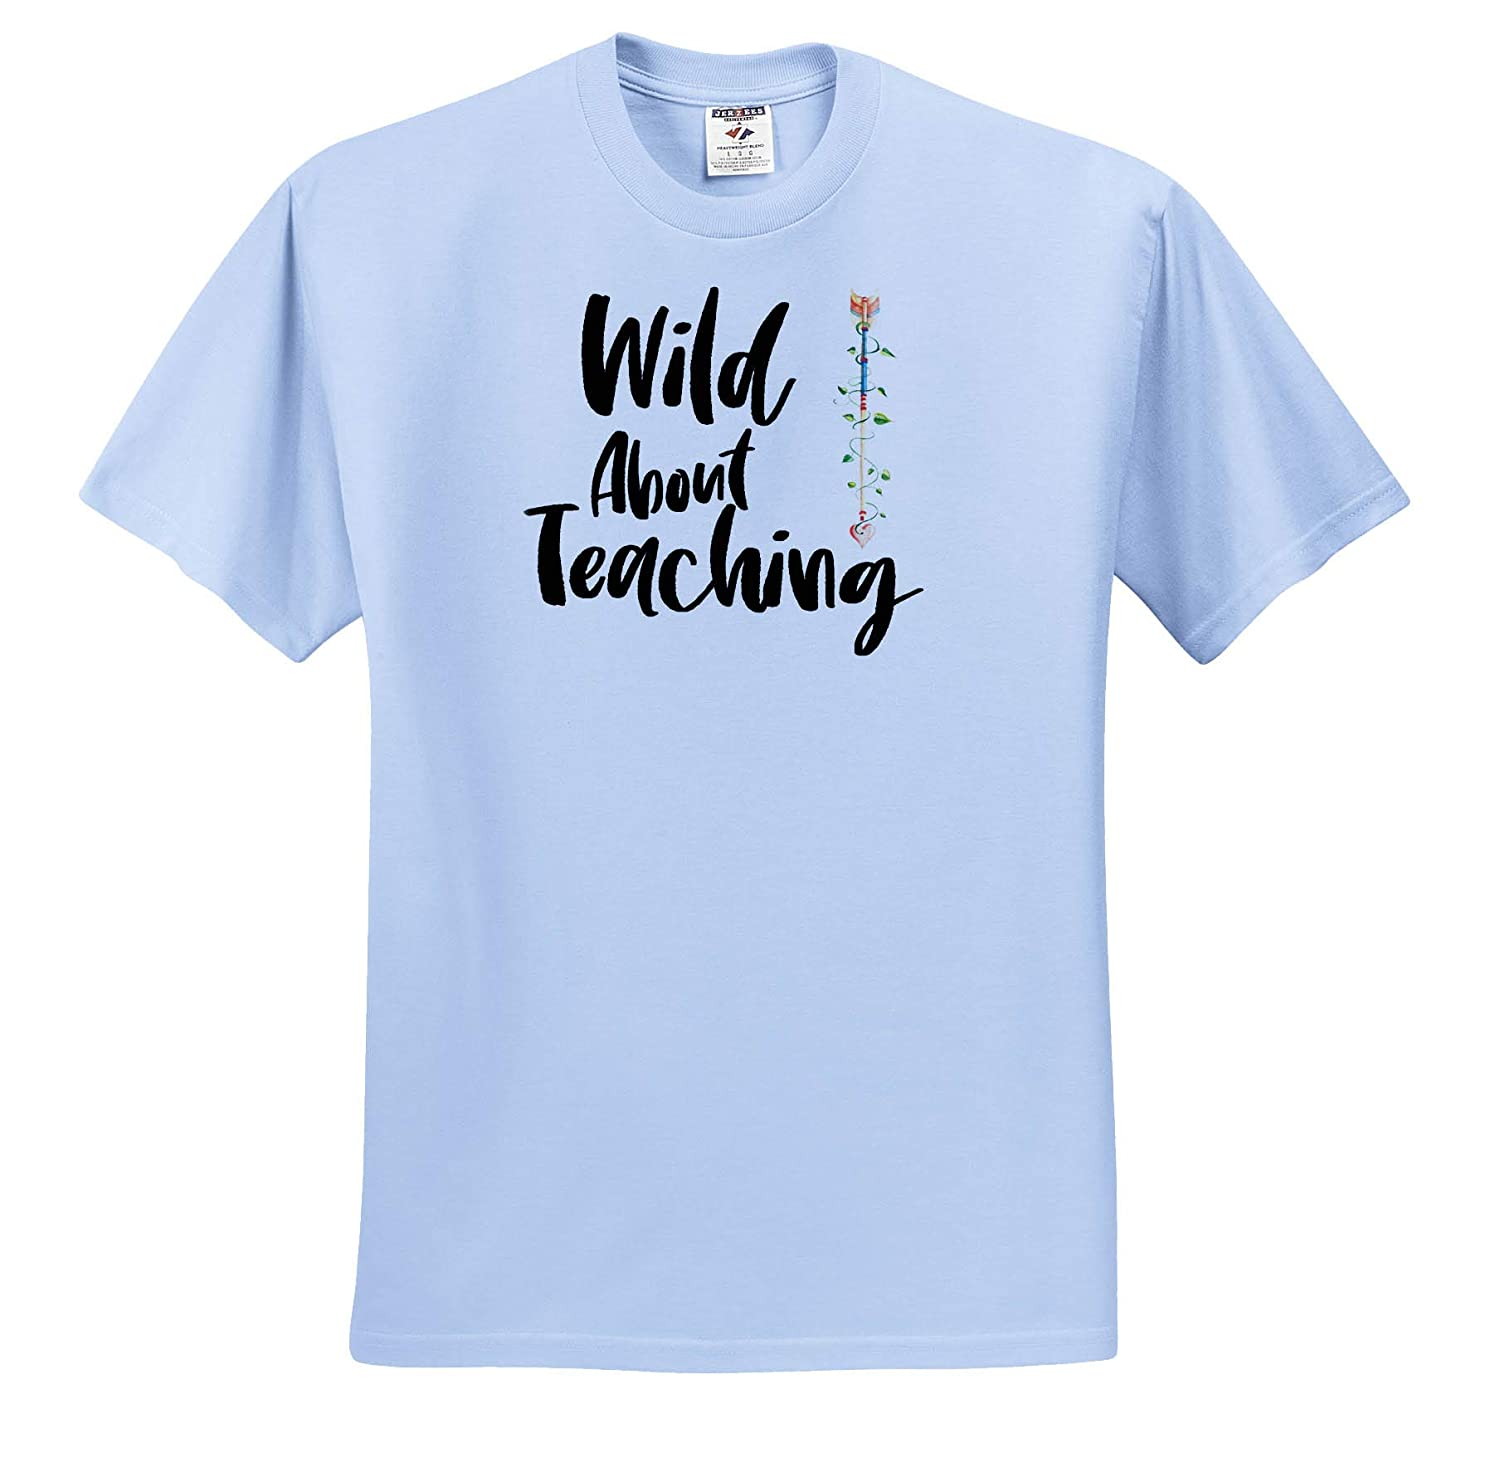 T-Shirts Quotes 3dRose Anne Marie Baugh Wild About Teaching with an Image of Watercolor Heart Arrow Design